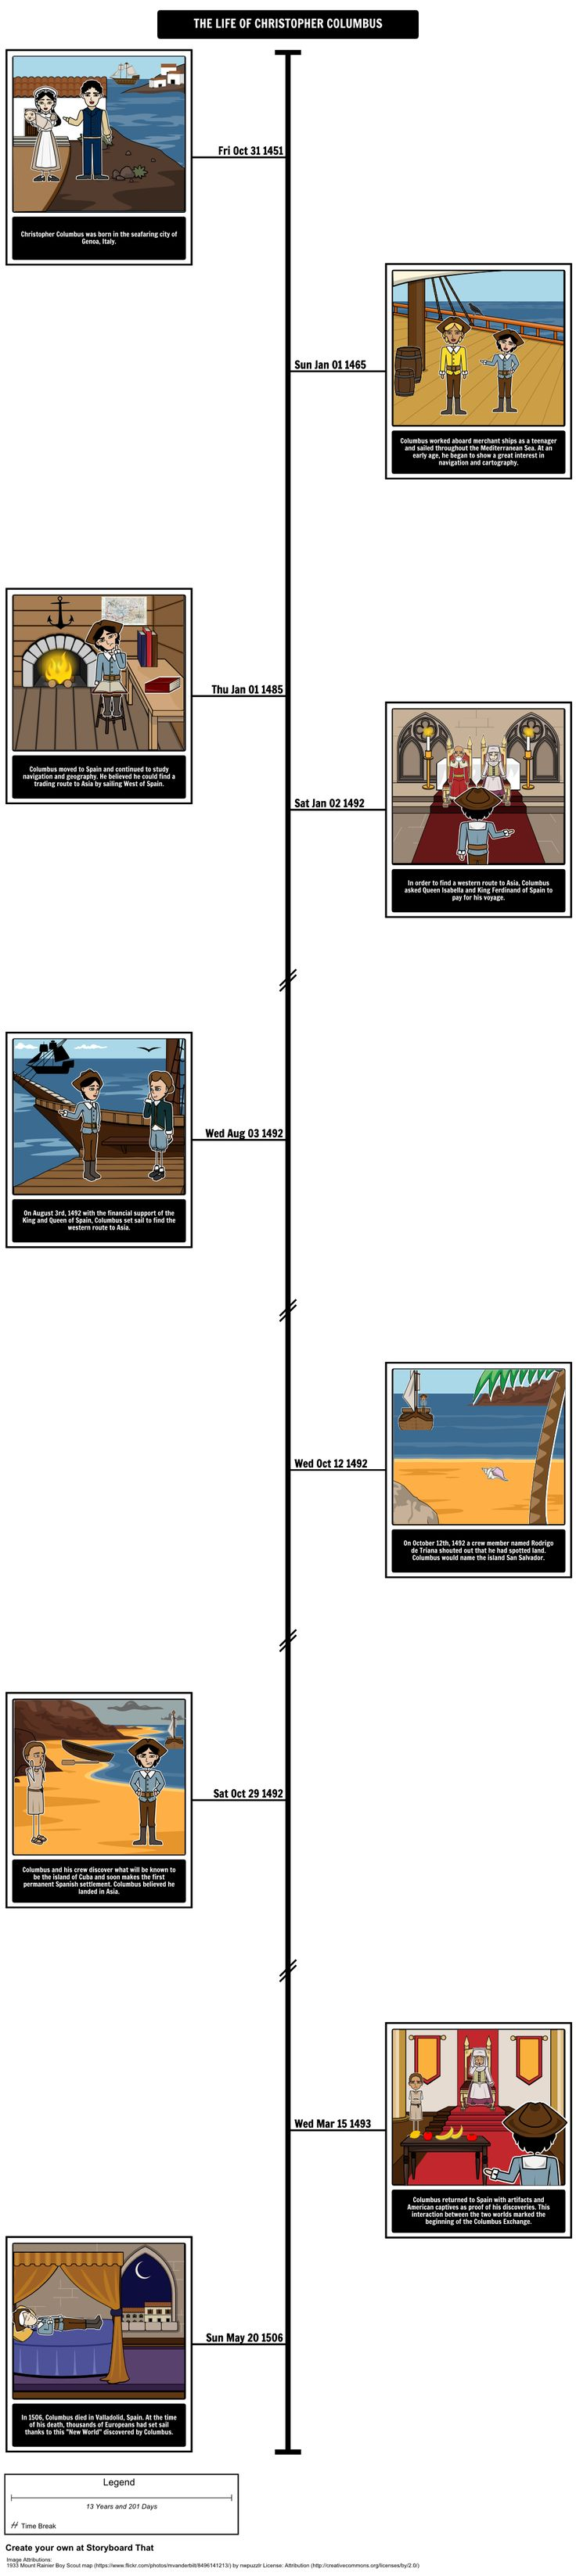 For this activity, students will create a timeline that illustrates the major events in the life of an explorer. For this example, we chose Christopher Columbus.